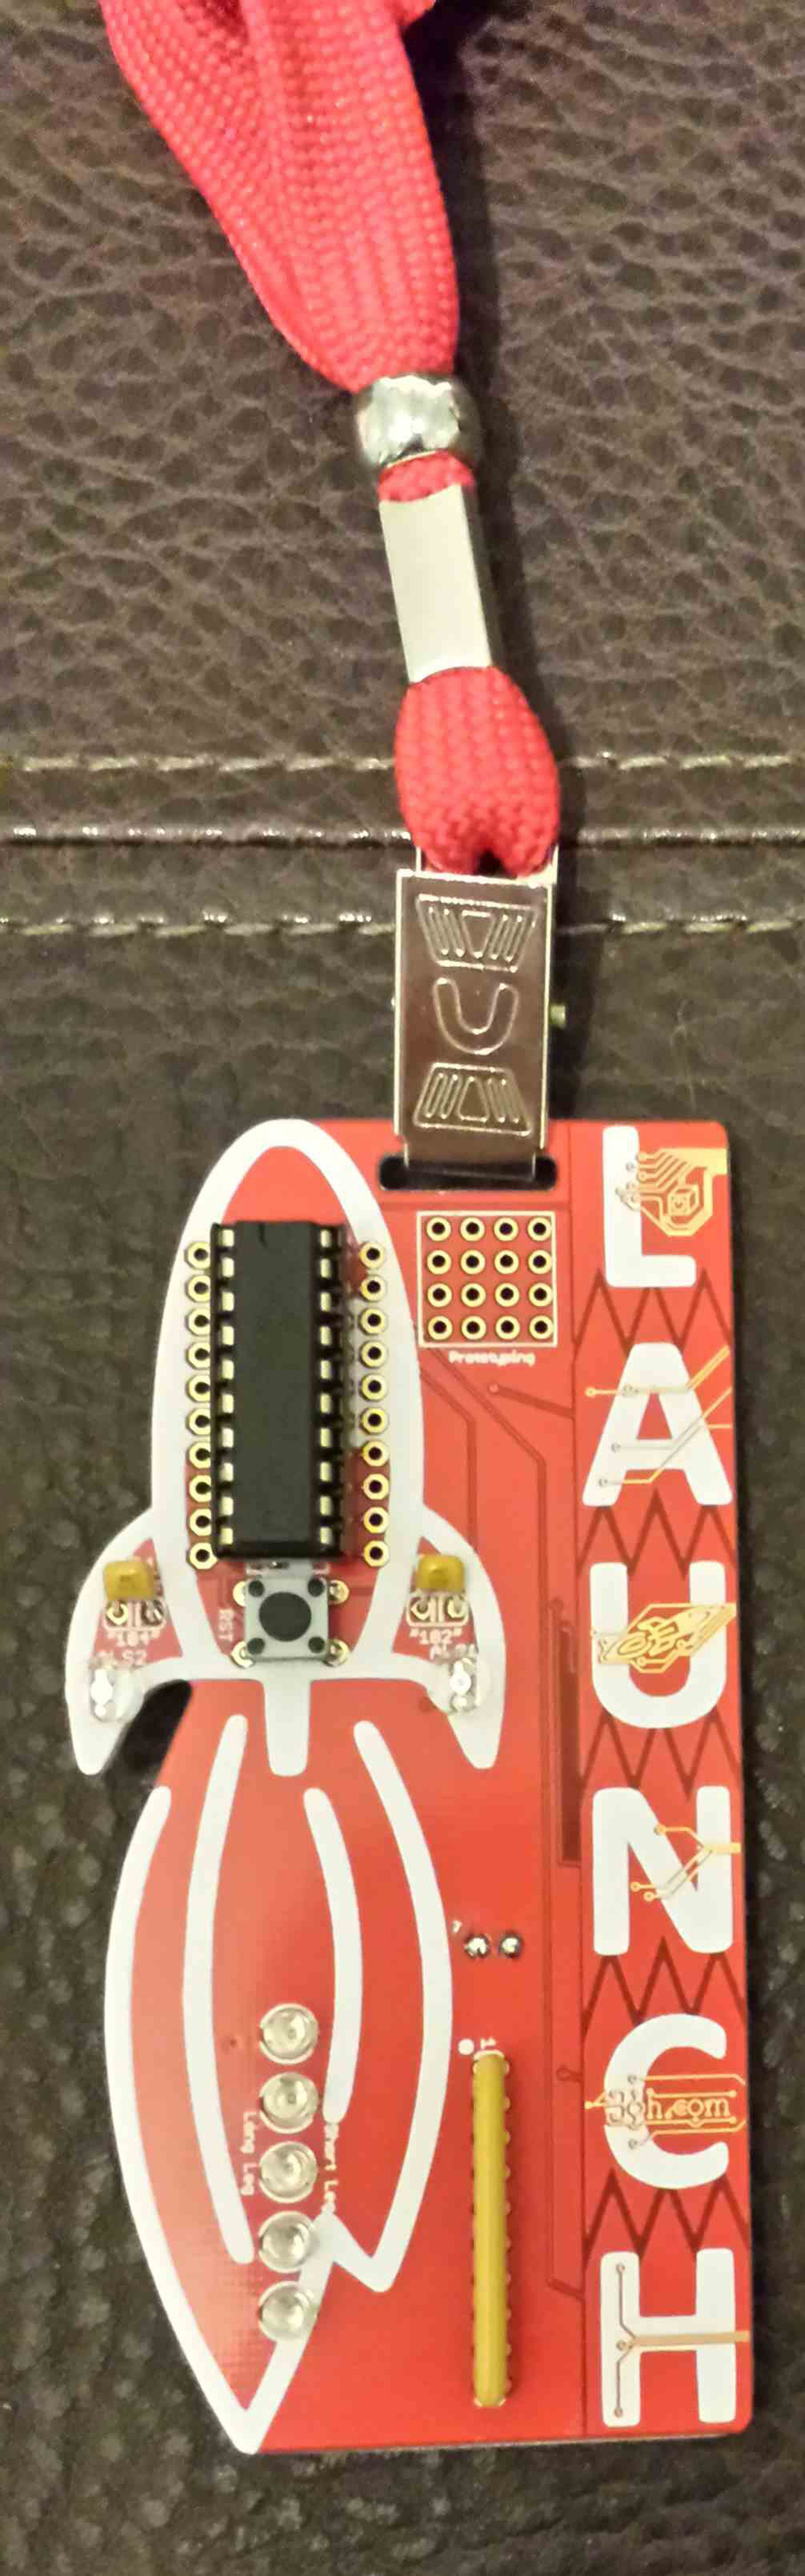 Msp430 Rocket Badge Learn To Solder Microcontrollers From Build A Blinky Smt Kit Wayne And Layne 1